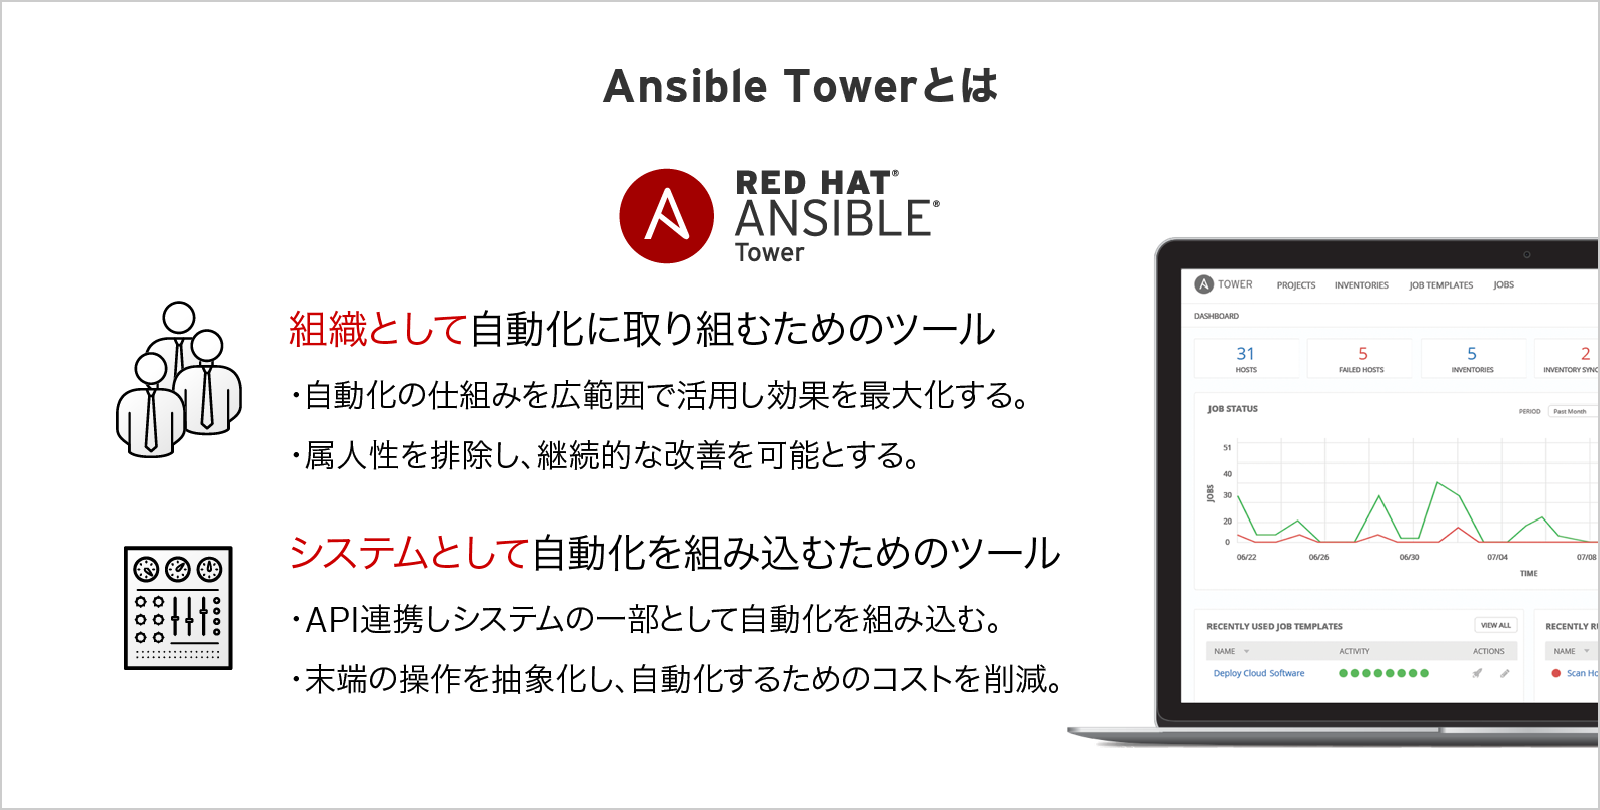 Ansible Tower とは